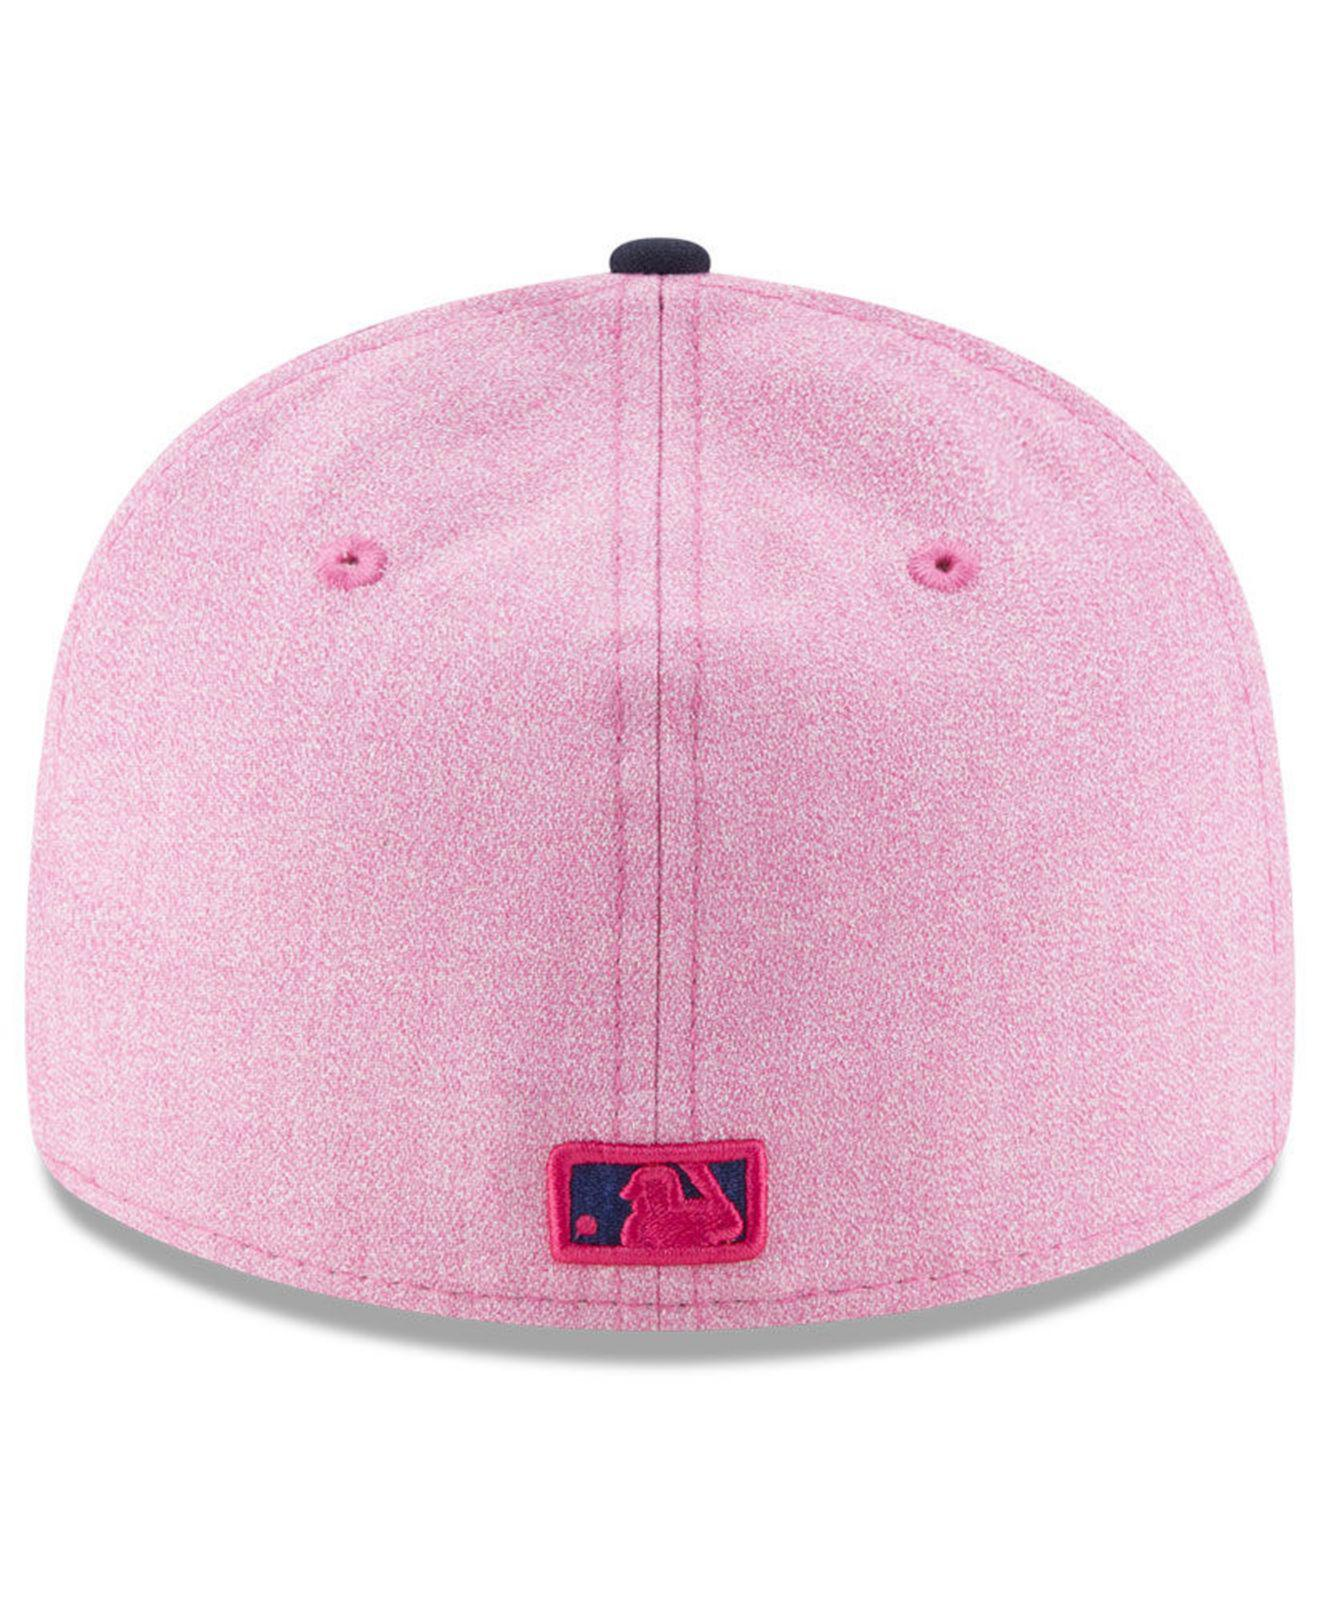 check out 99681 f0677 ... hat 6f80d b1e8a  new zealand texas rangers mothers day low profile  59fifty fitted cap lyst. view fullscreen 3a160